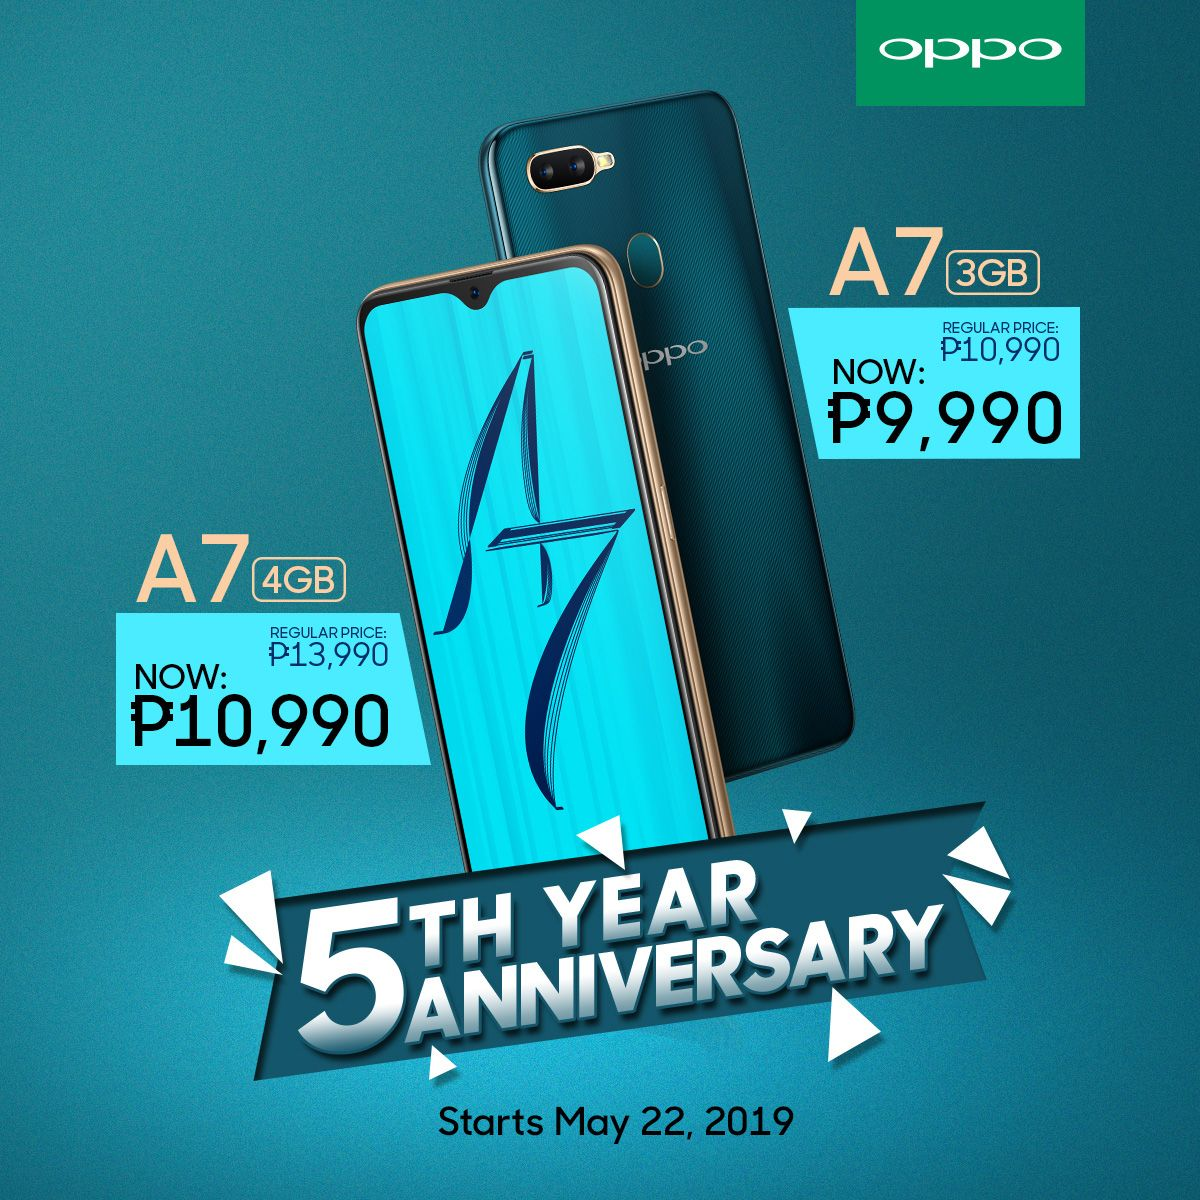 OPPO A7 3GB now 9990 Pesos and OPPO A7 4GB now 10990 Pesos!